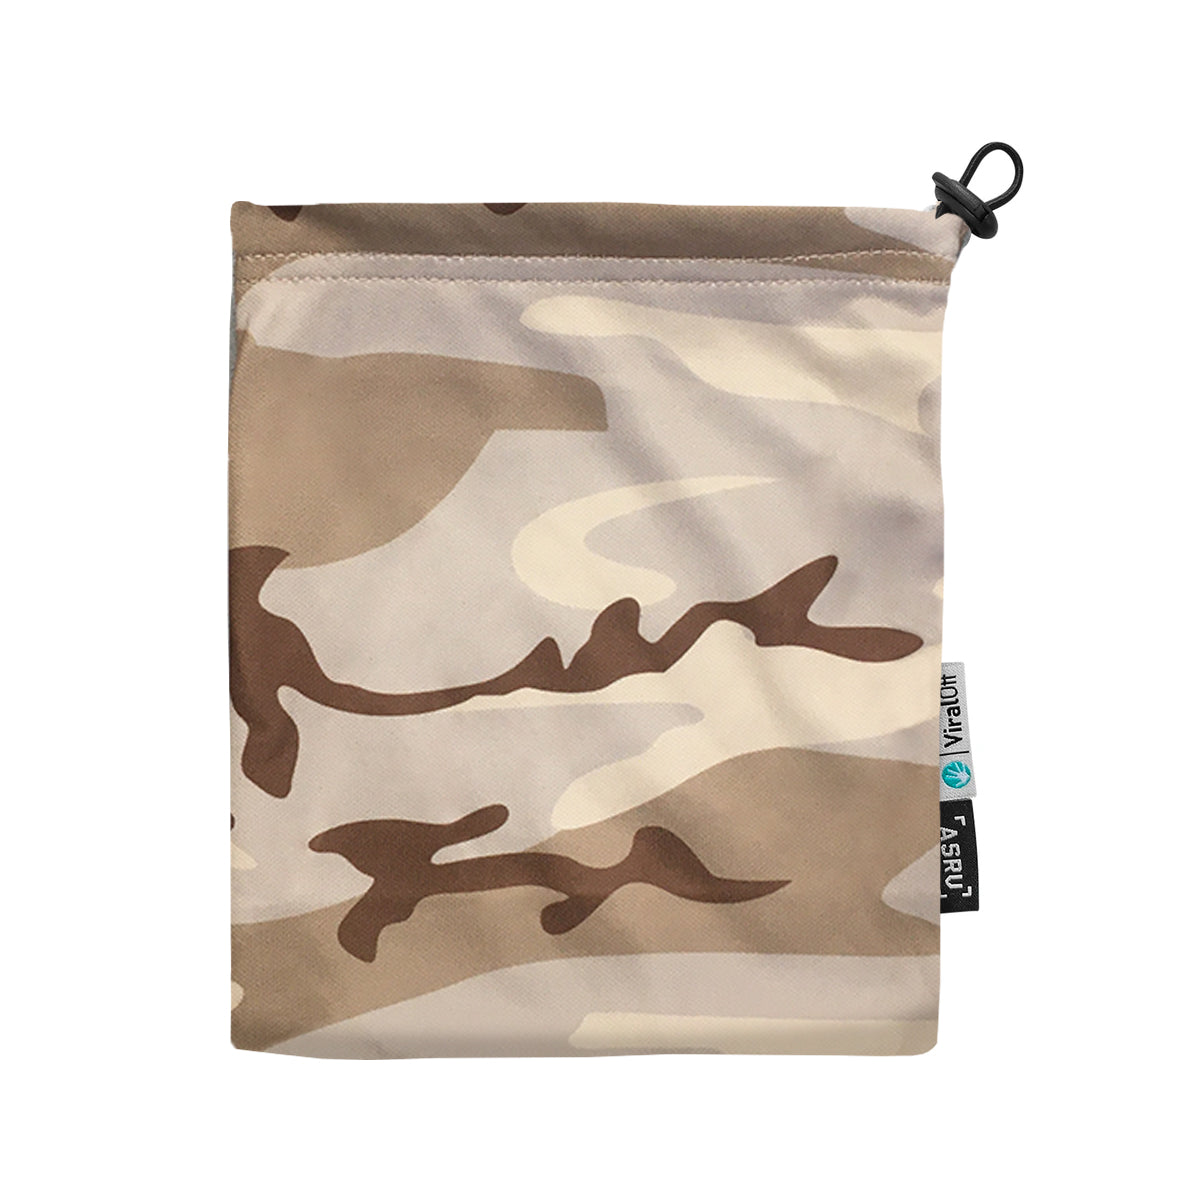 0383. ViralOff® Form-Fitting Face Mask (2 Pack with Bag) - Dune Camo